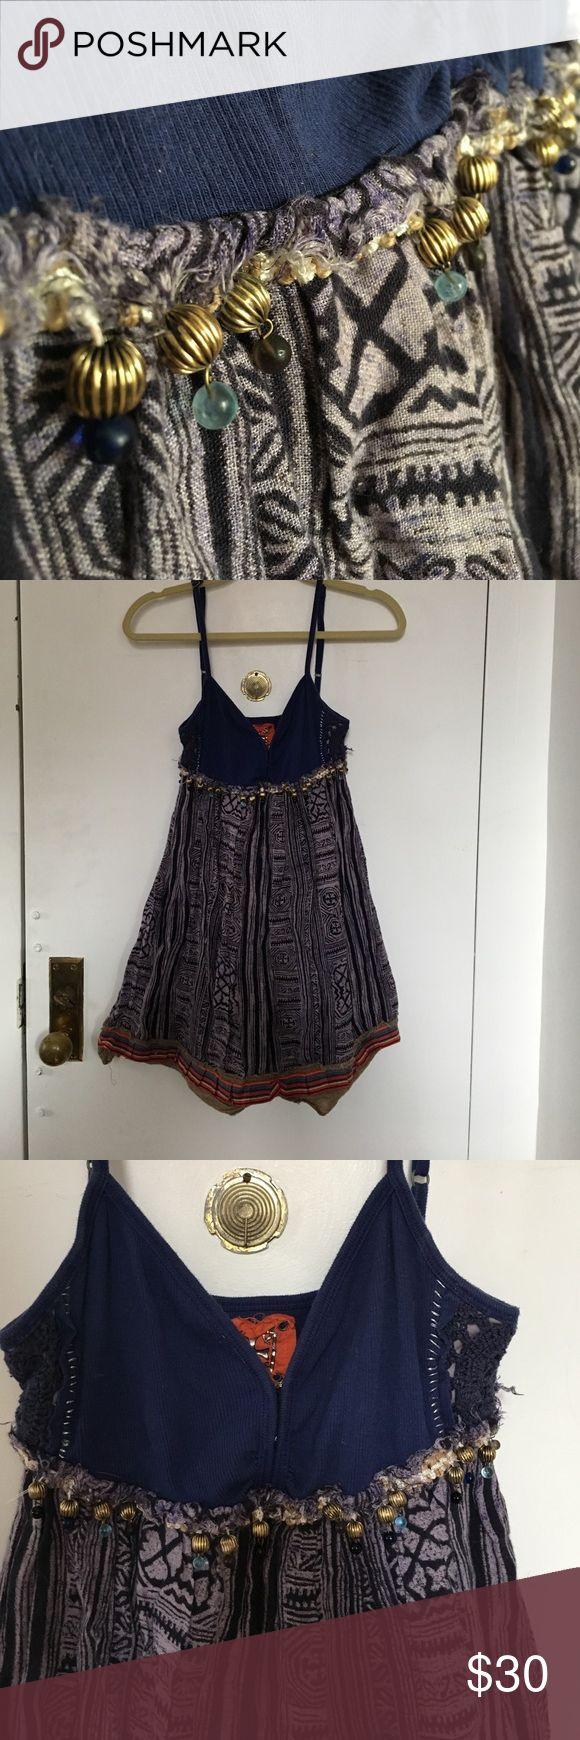 Free People Navy Beaded Mini Dress Free People navy mini dress with adjustable spaghetti straps with fun hanging beads below the chest (*some missing beads*).  Beautiful lace design on either side of the top of the dress and flared bottom with unique Gaelic pattern. Size 8 and hits mid thigh/just above the knee. Great for summer outings paired with wedges or a casual flip flop! Free People Dresses Mini